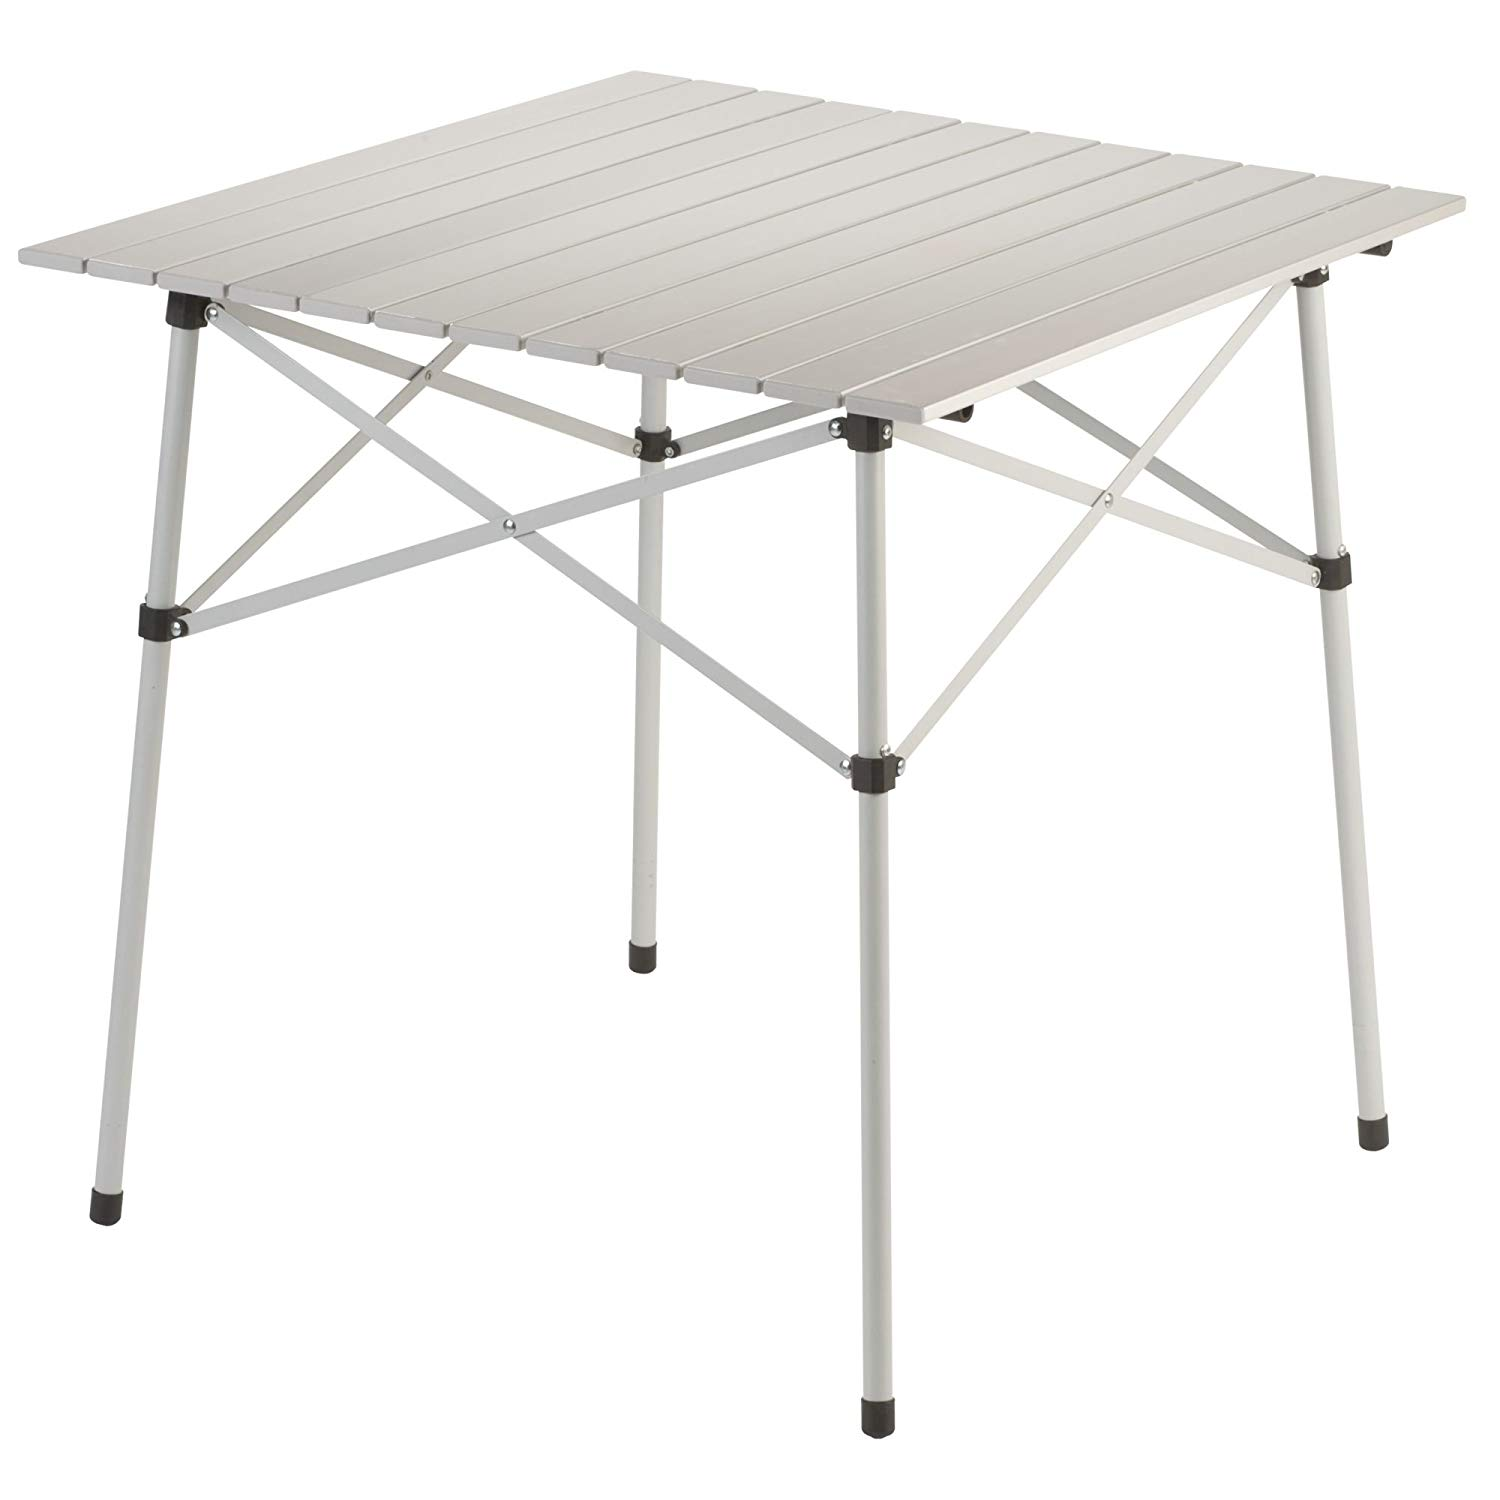 coleman outdoor compact table, camping table, folding camping table, roll up camping table, portable camping table, small camping table, best camping table, portable table, collapsible camping table, camping table and chairs, foldable camping table, fold up camping table, small folding camping table, camping cooking table, folding camping table and chairs, rv folding table, camping kitchen table, aluminum camping table, camping table with storage, best small camping table, coleman camping table, lightweight camping table, camping side table, fold up table, camping stove table, aluminium folding camping table, coleman folding table, portable camping kitchen table, metal camping table, camping grill table